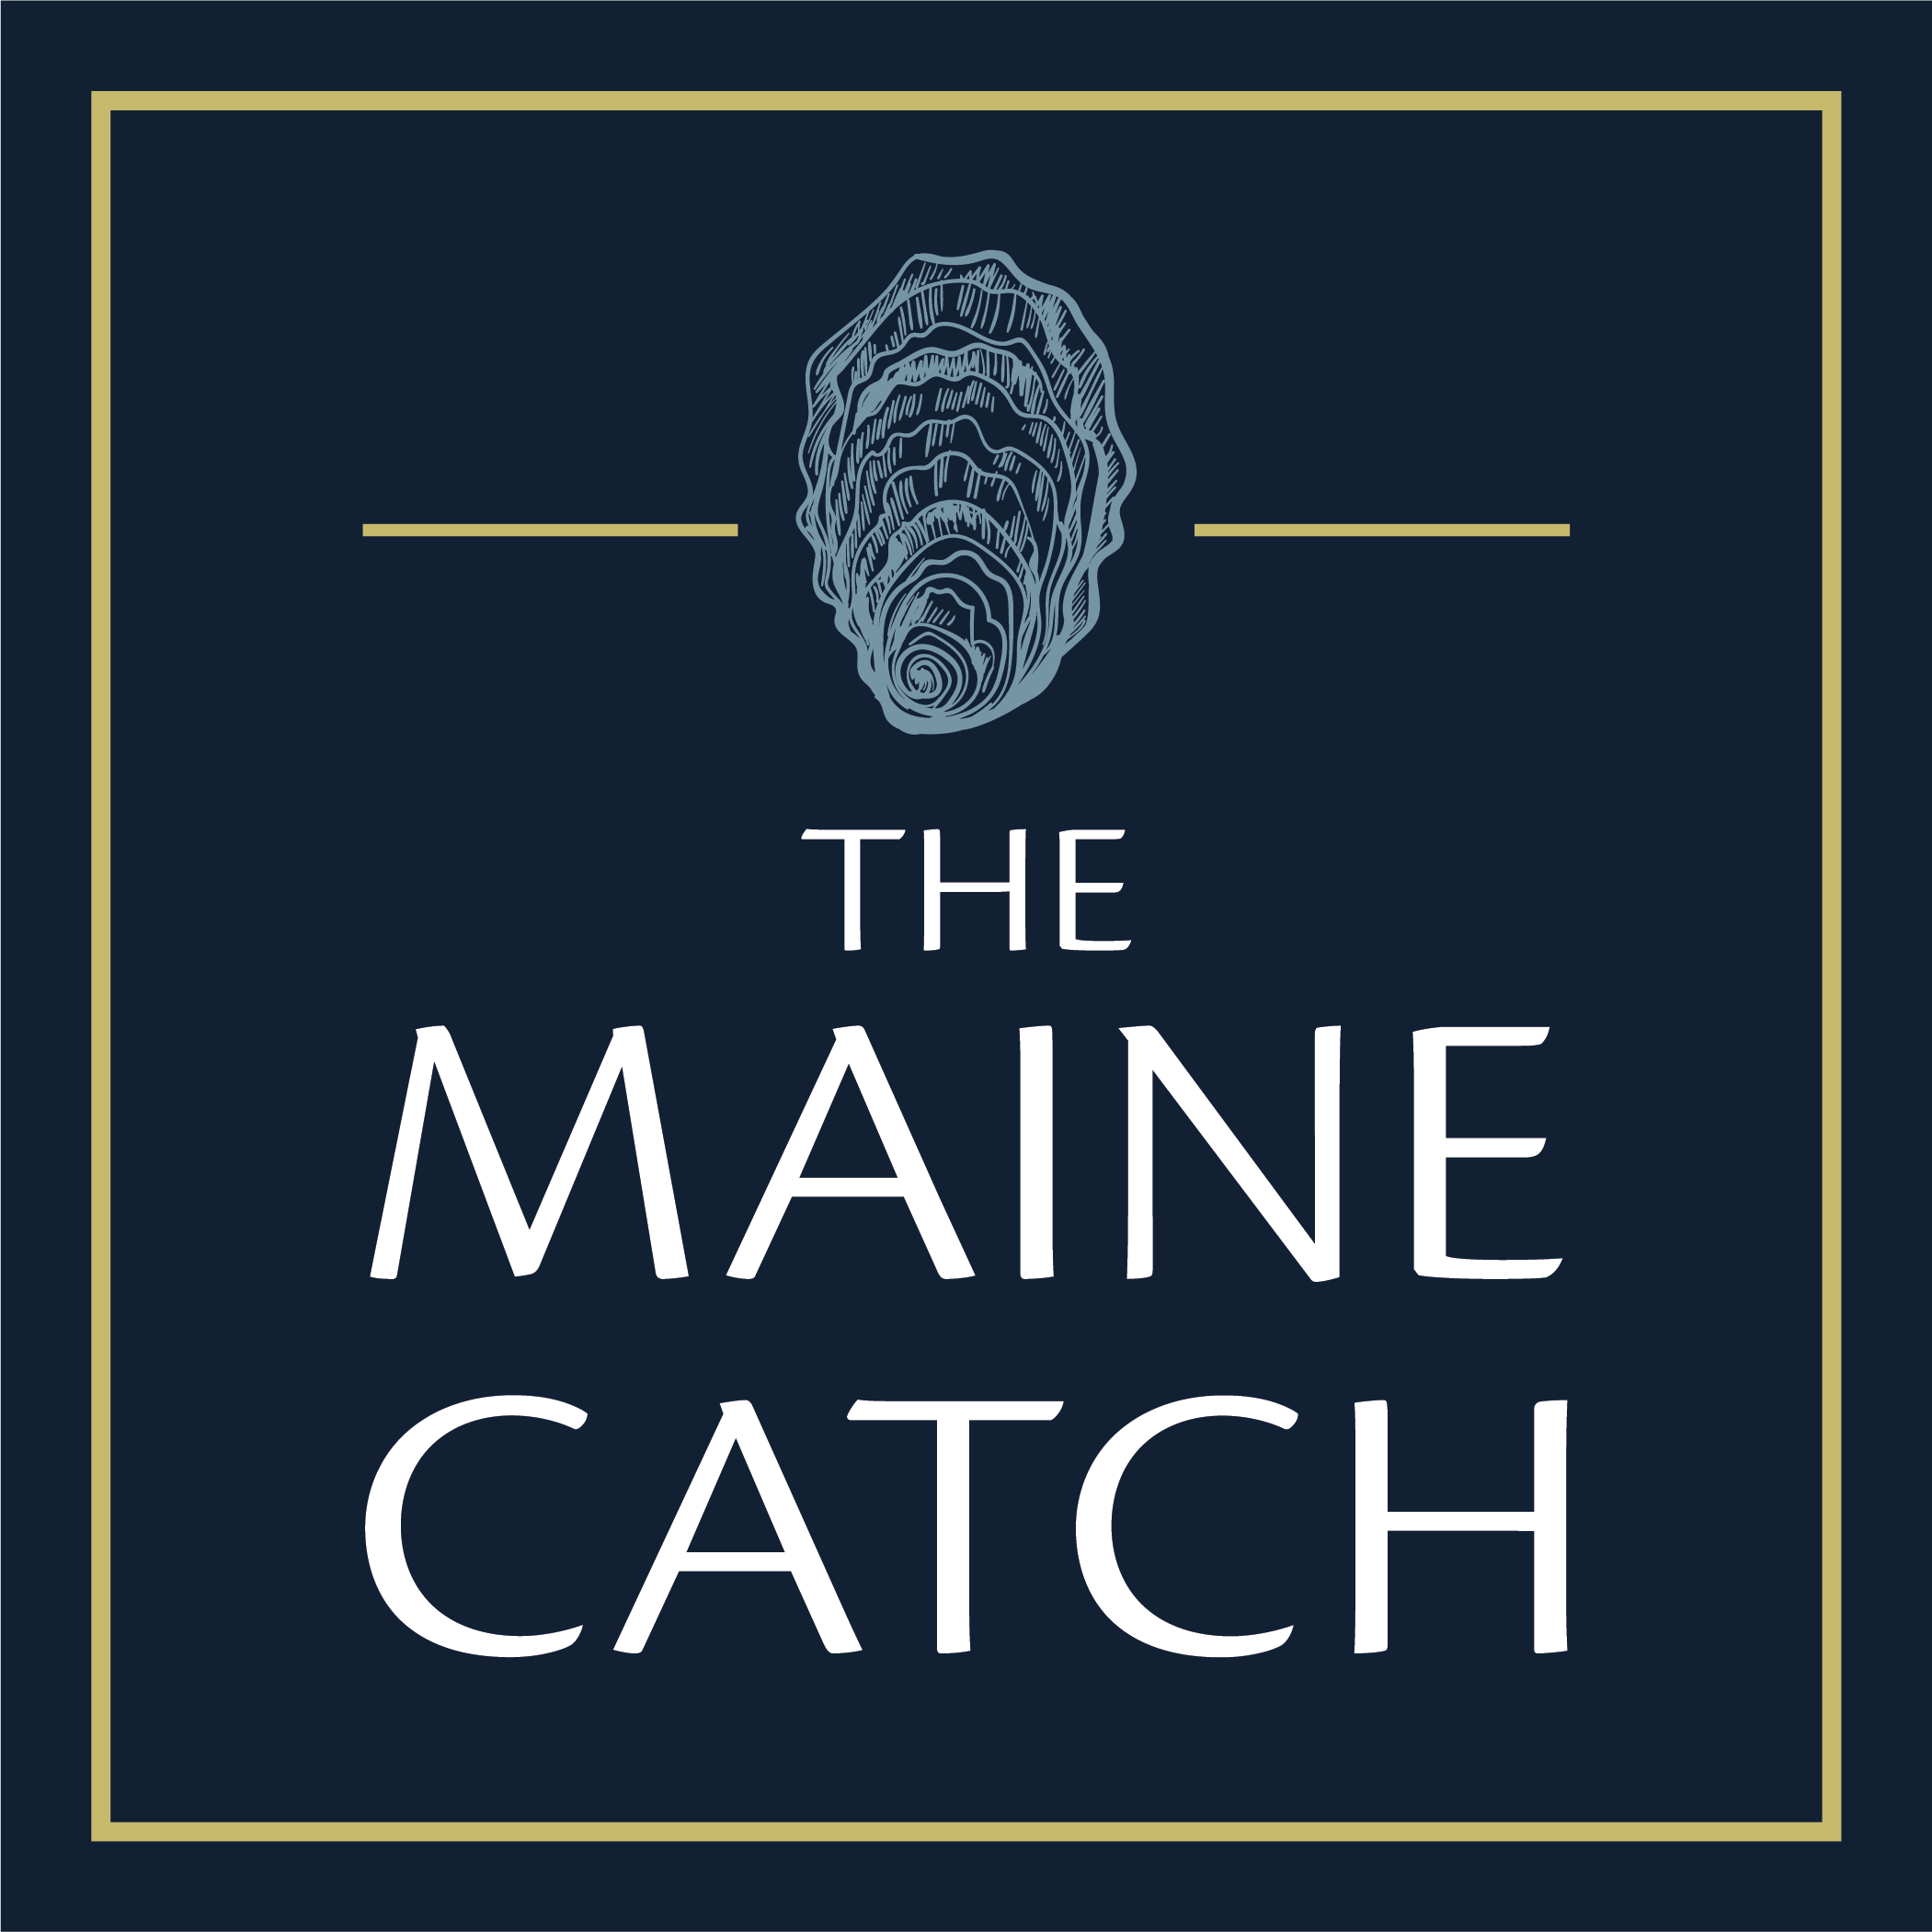 The Maine Catch